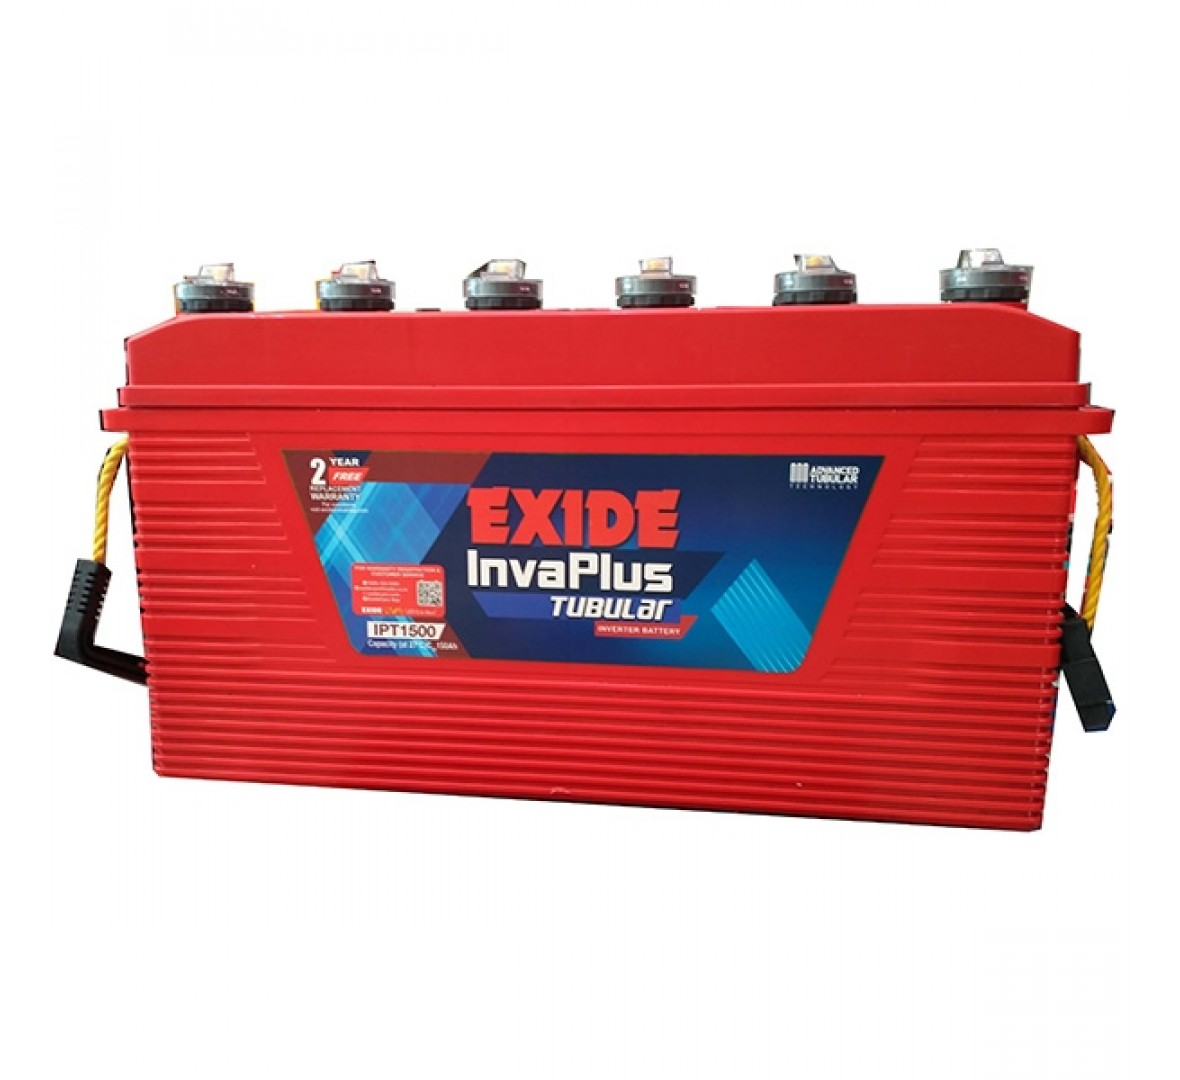 Exide Invaplus Ipt1500 150Ah Inverter Battery